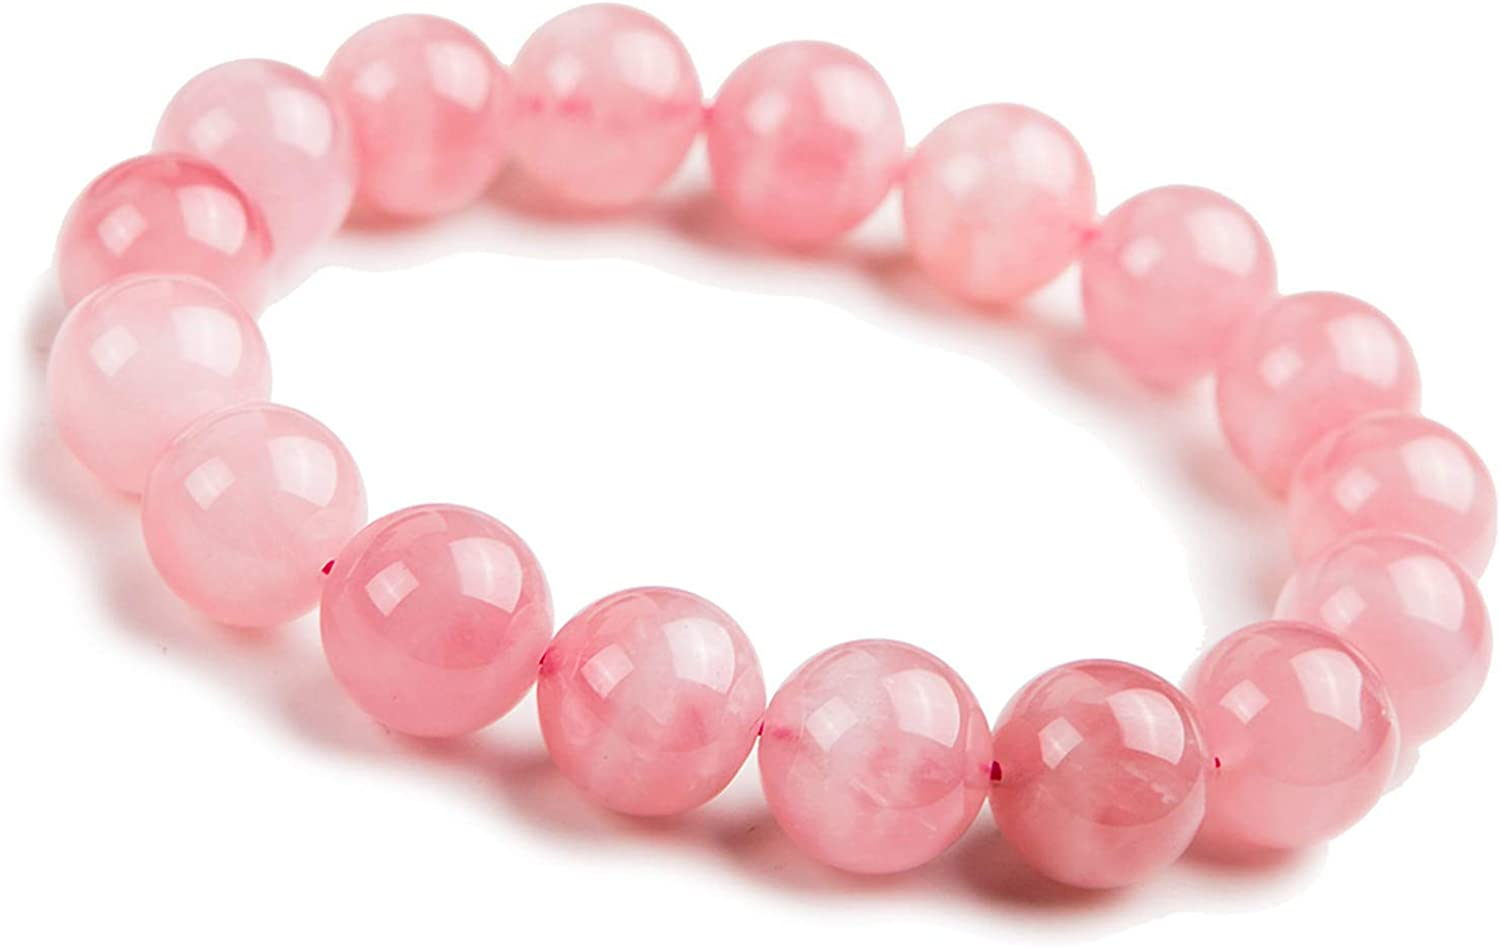 Elongated Micro Faceted Drops Shape Briolettes,12-11mm size.Amazing Item at Low Price. 12 Strand Rare Natural MADAGASCAR Rose Quartz